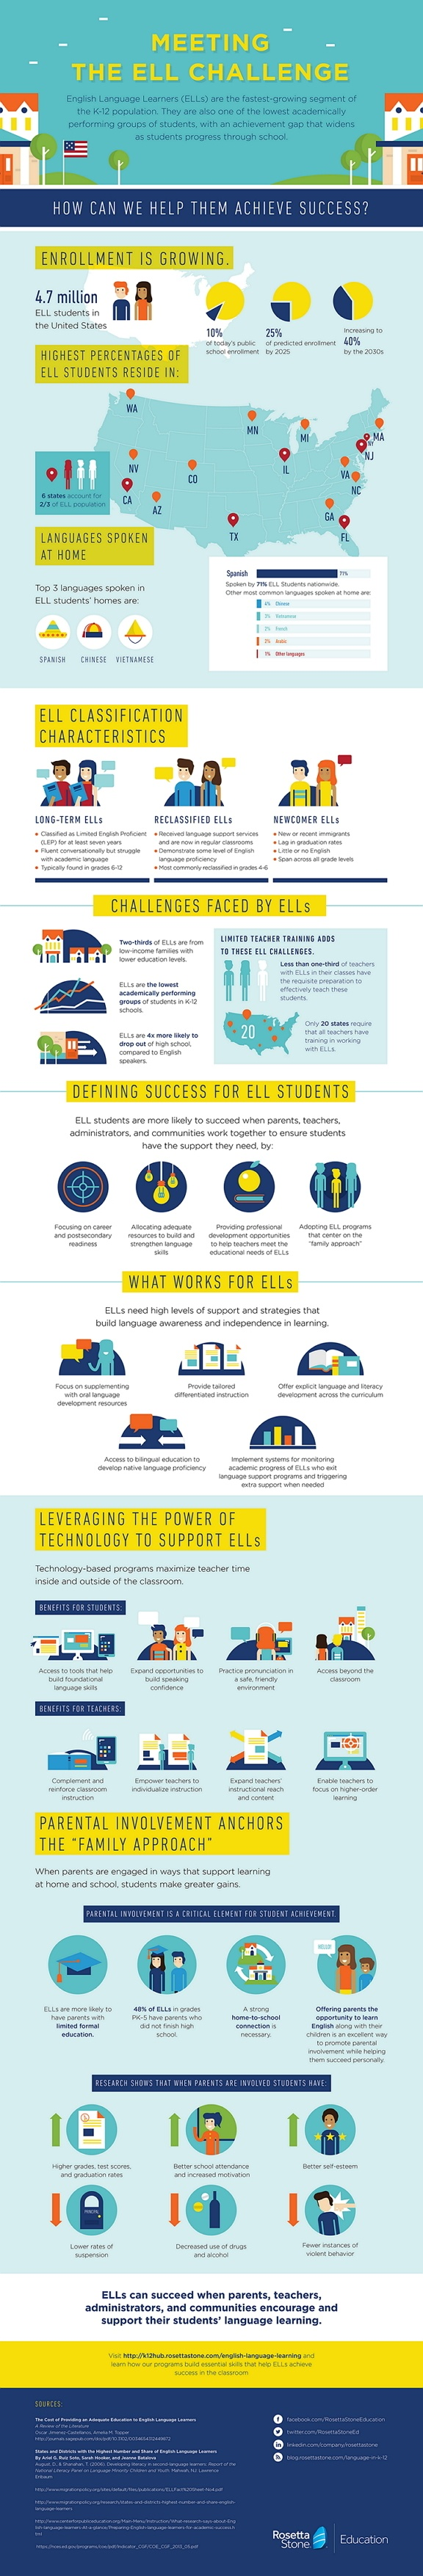 Meeting the English Language Learner Challenge Infographic